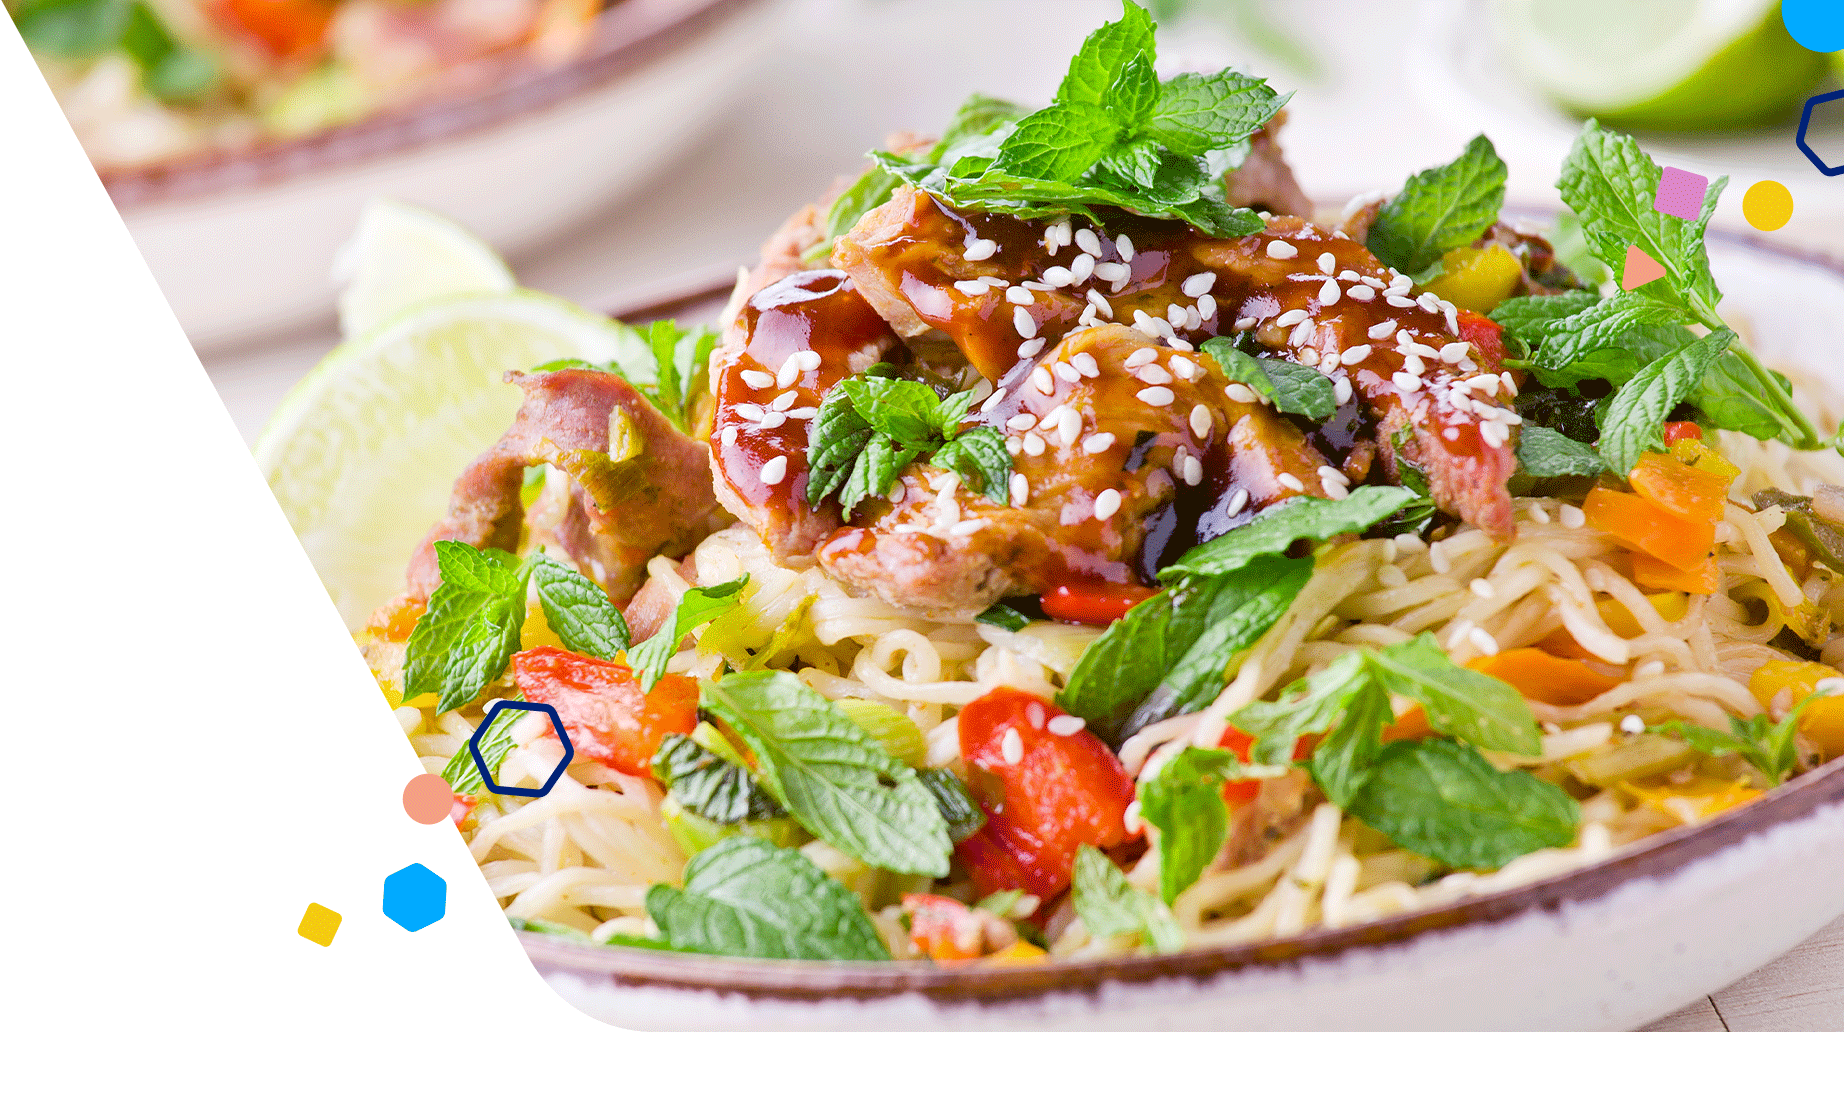 Healthy Pregnancy Recipes Thai Chicken Noodle Salad